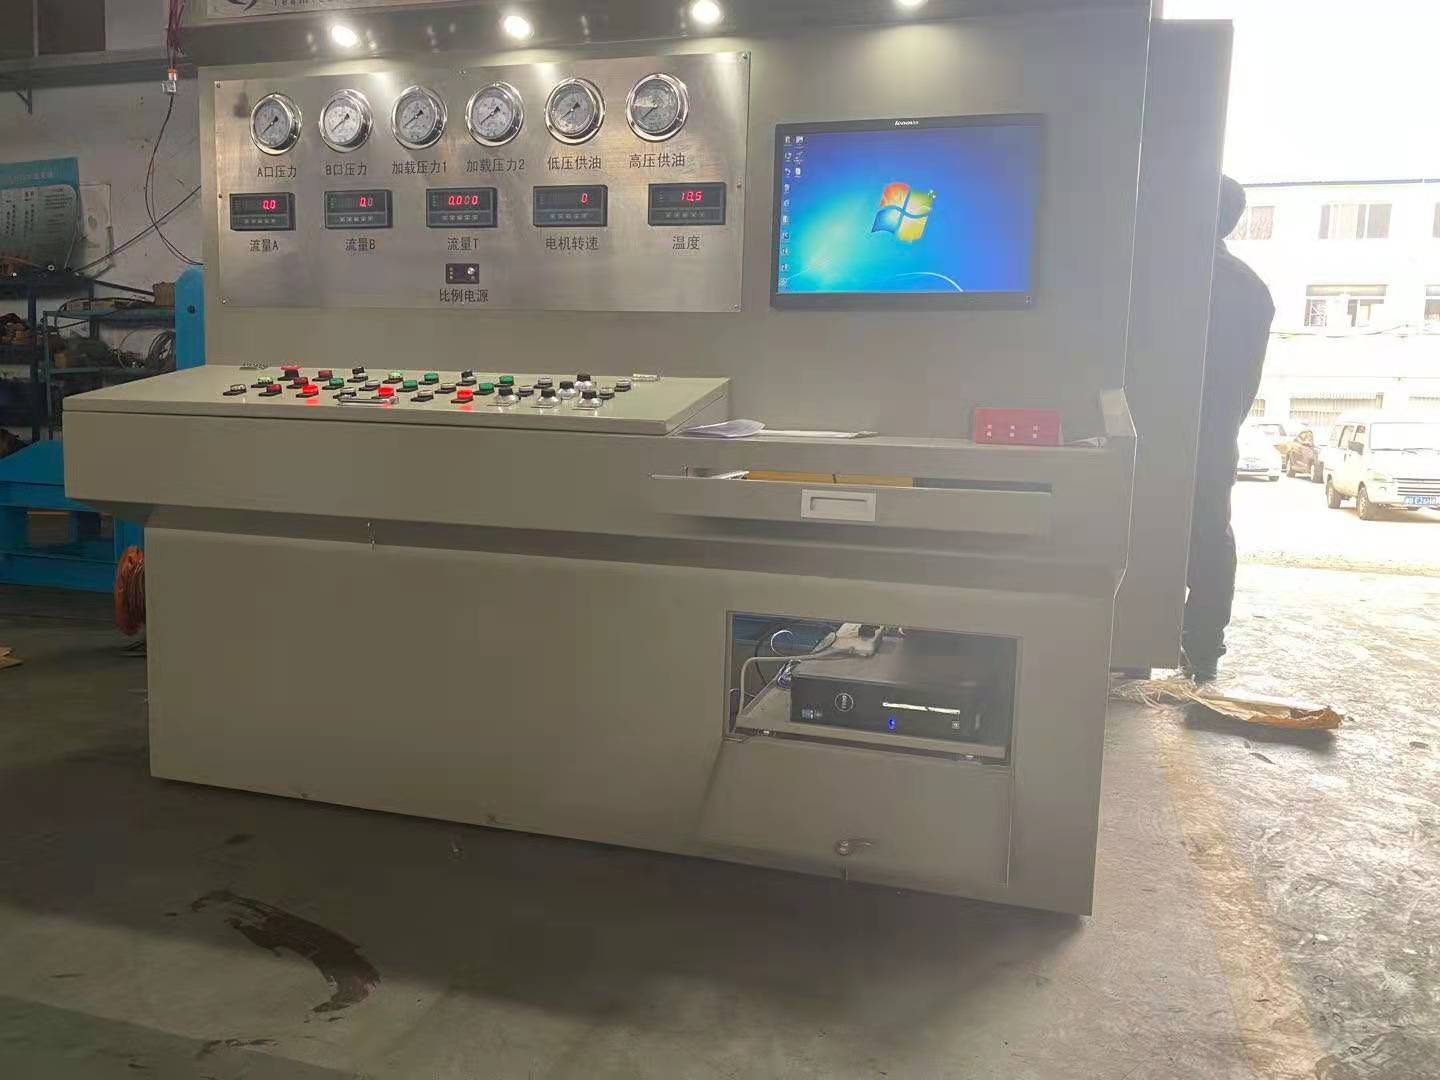 Vane Pump test-bed, hydraulic disassembly test-bed, pump test-bed